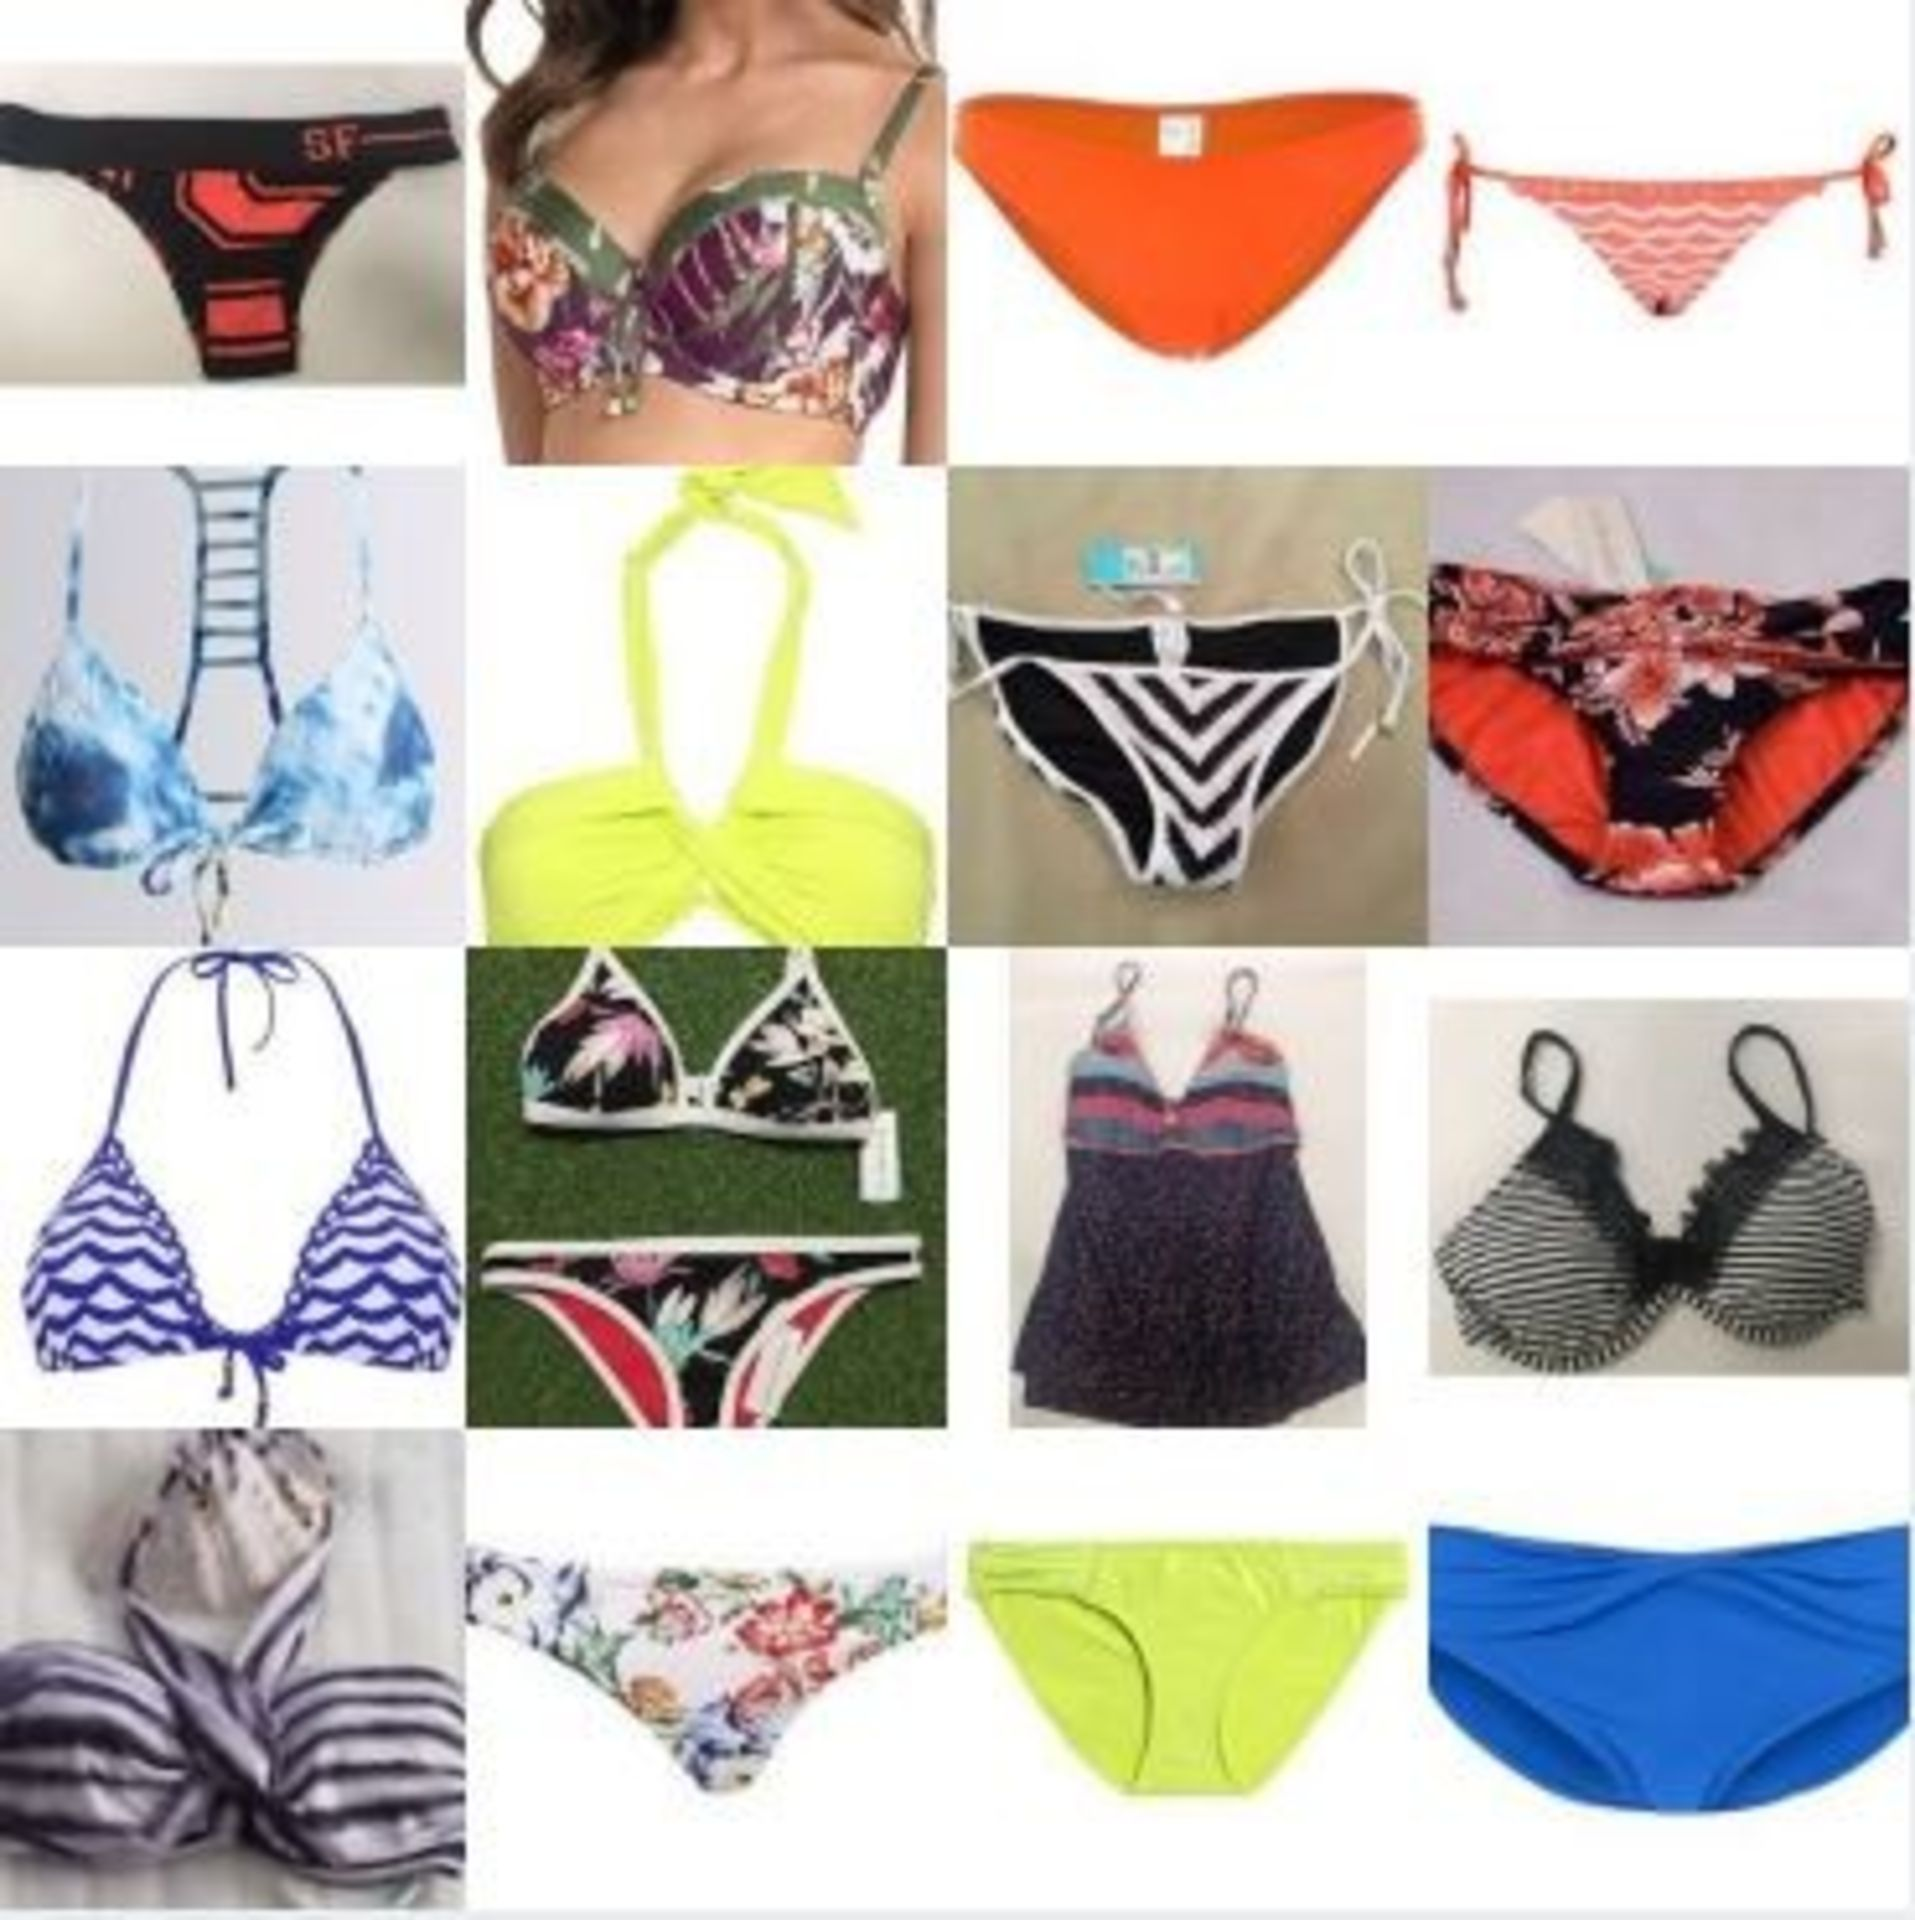 Lot 6 - Sourced From Big Brand Bikini Manufacturer SeaFolly: